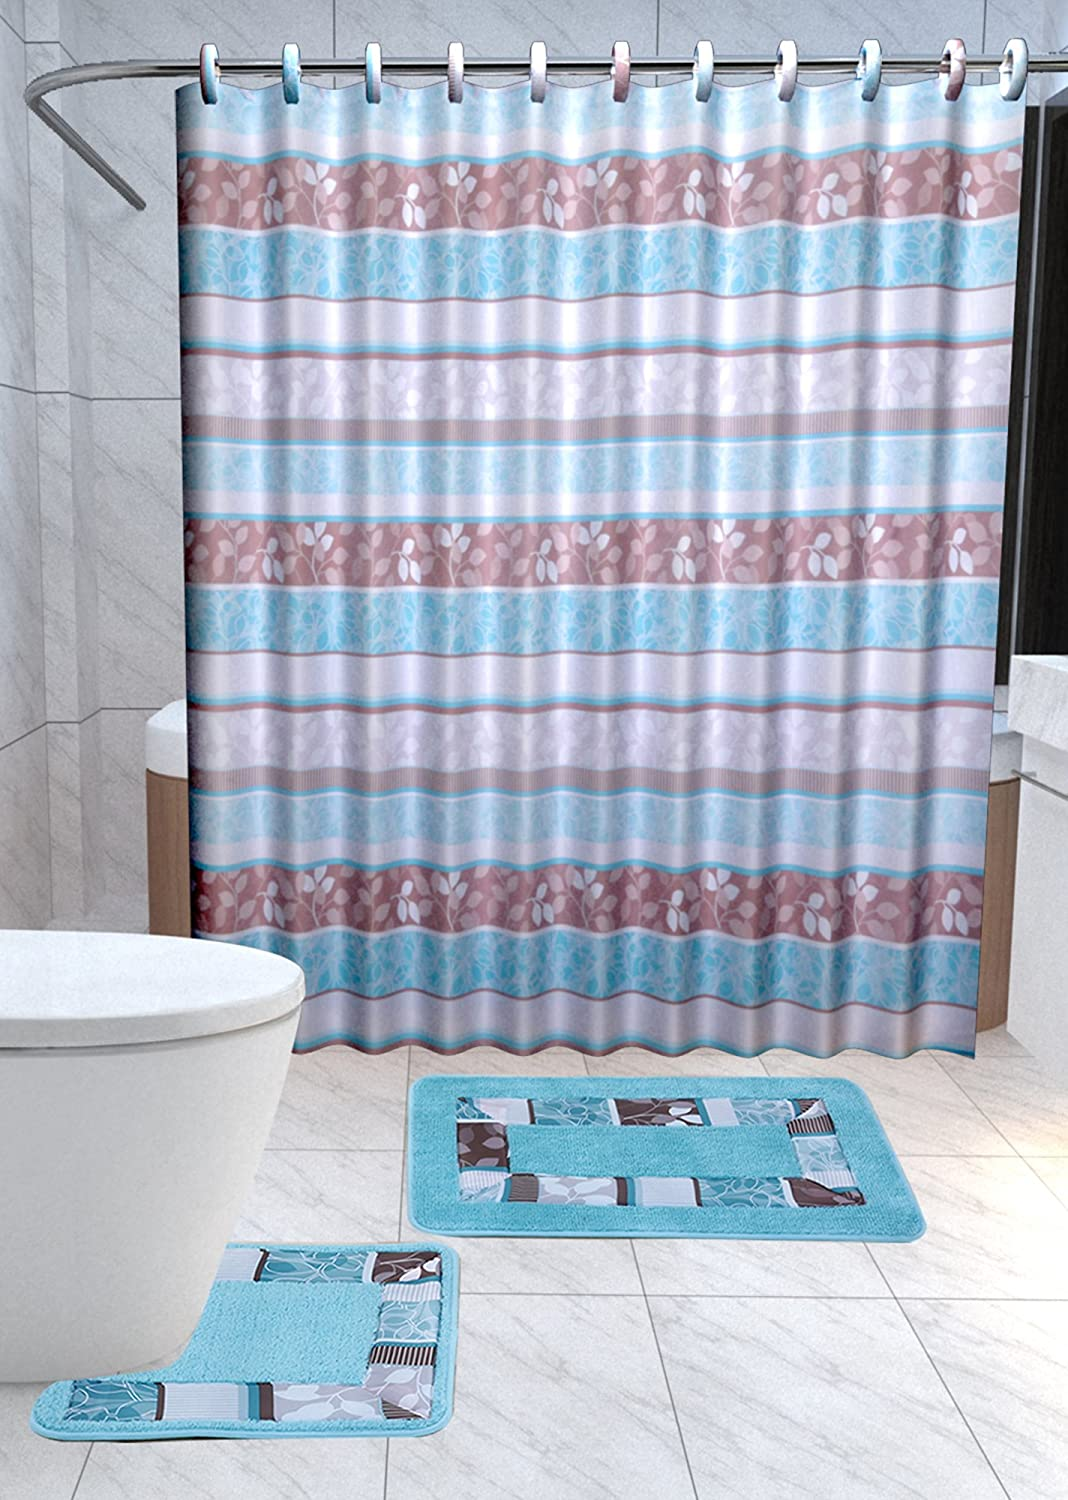 Attrayant Amazon.com: Zen 15 Piece Leaf Bathroom Accessories Set Rugs Shower Curtain  U0026 Matching Rings Turquoise Blue U0026 Brown: Home U0026 Kitchen